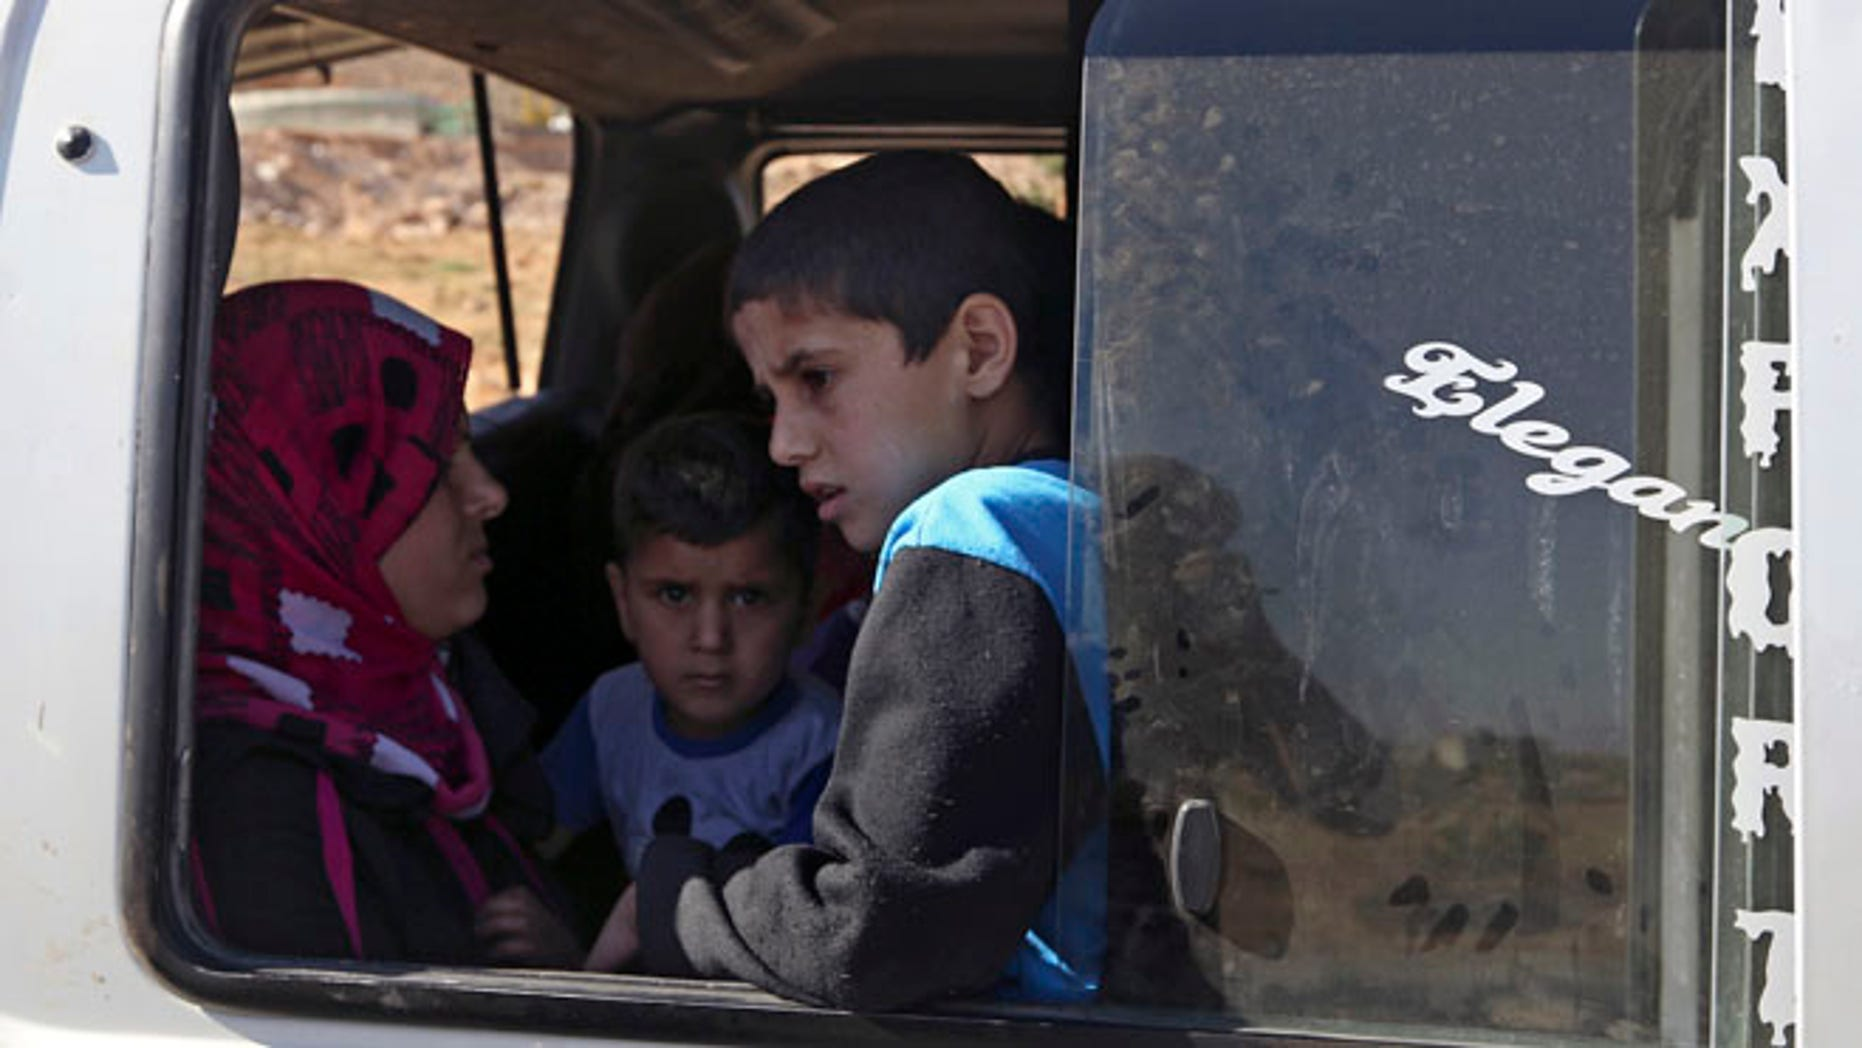 Aug. 4, 2014: A Lebanese family wait to depart in a minibus on the outskirts of Arsal, a predominantly Sunni Muslim town near the Syrian border in eastern Lebanon. (AP)